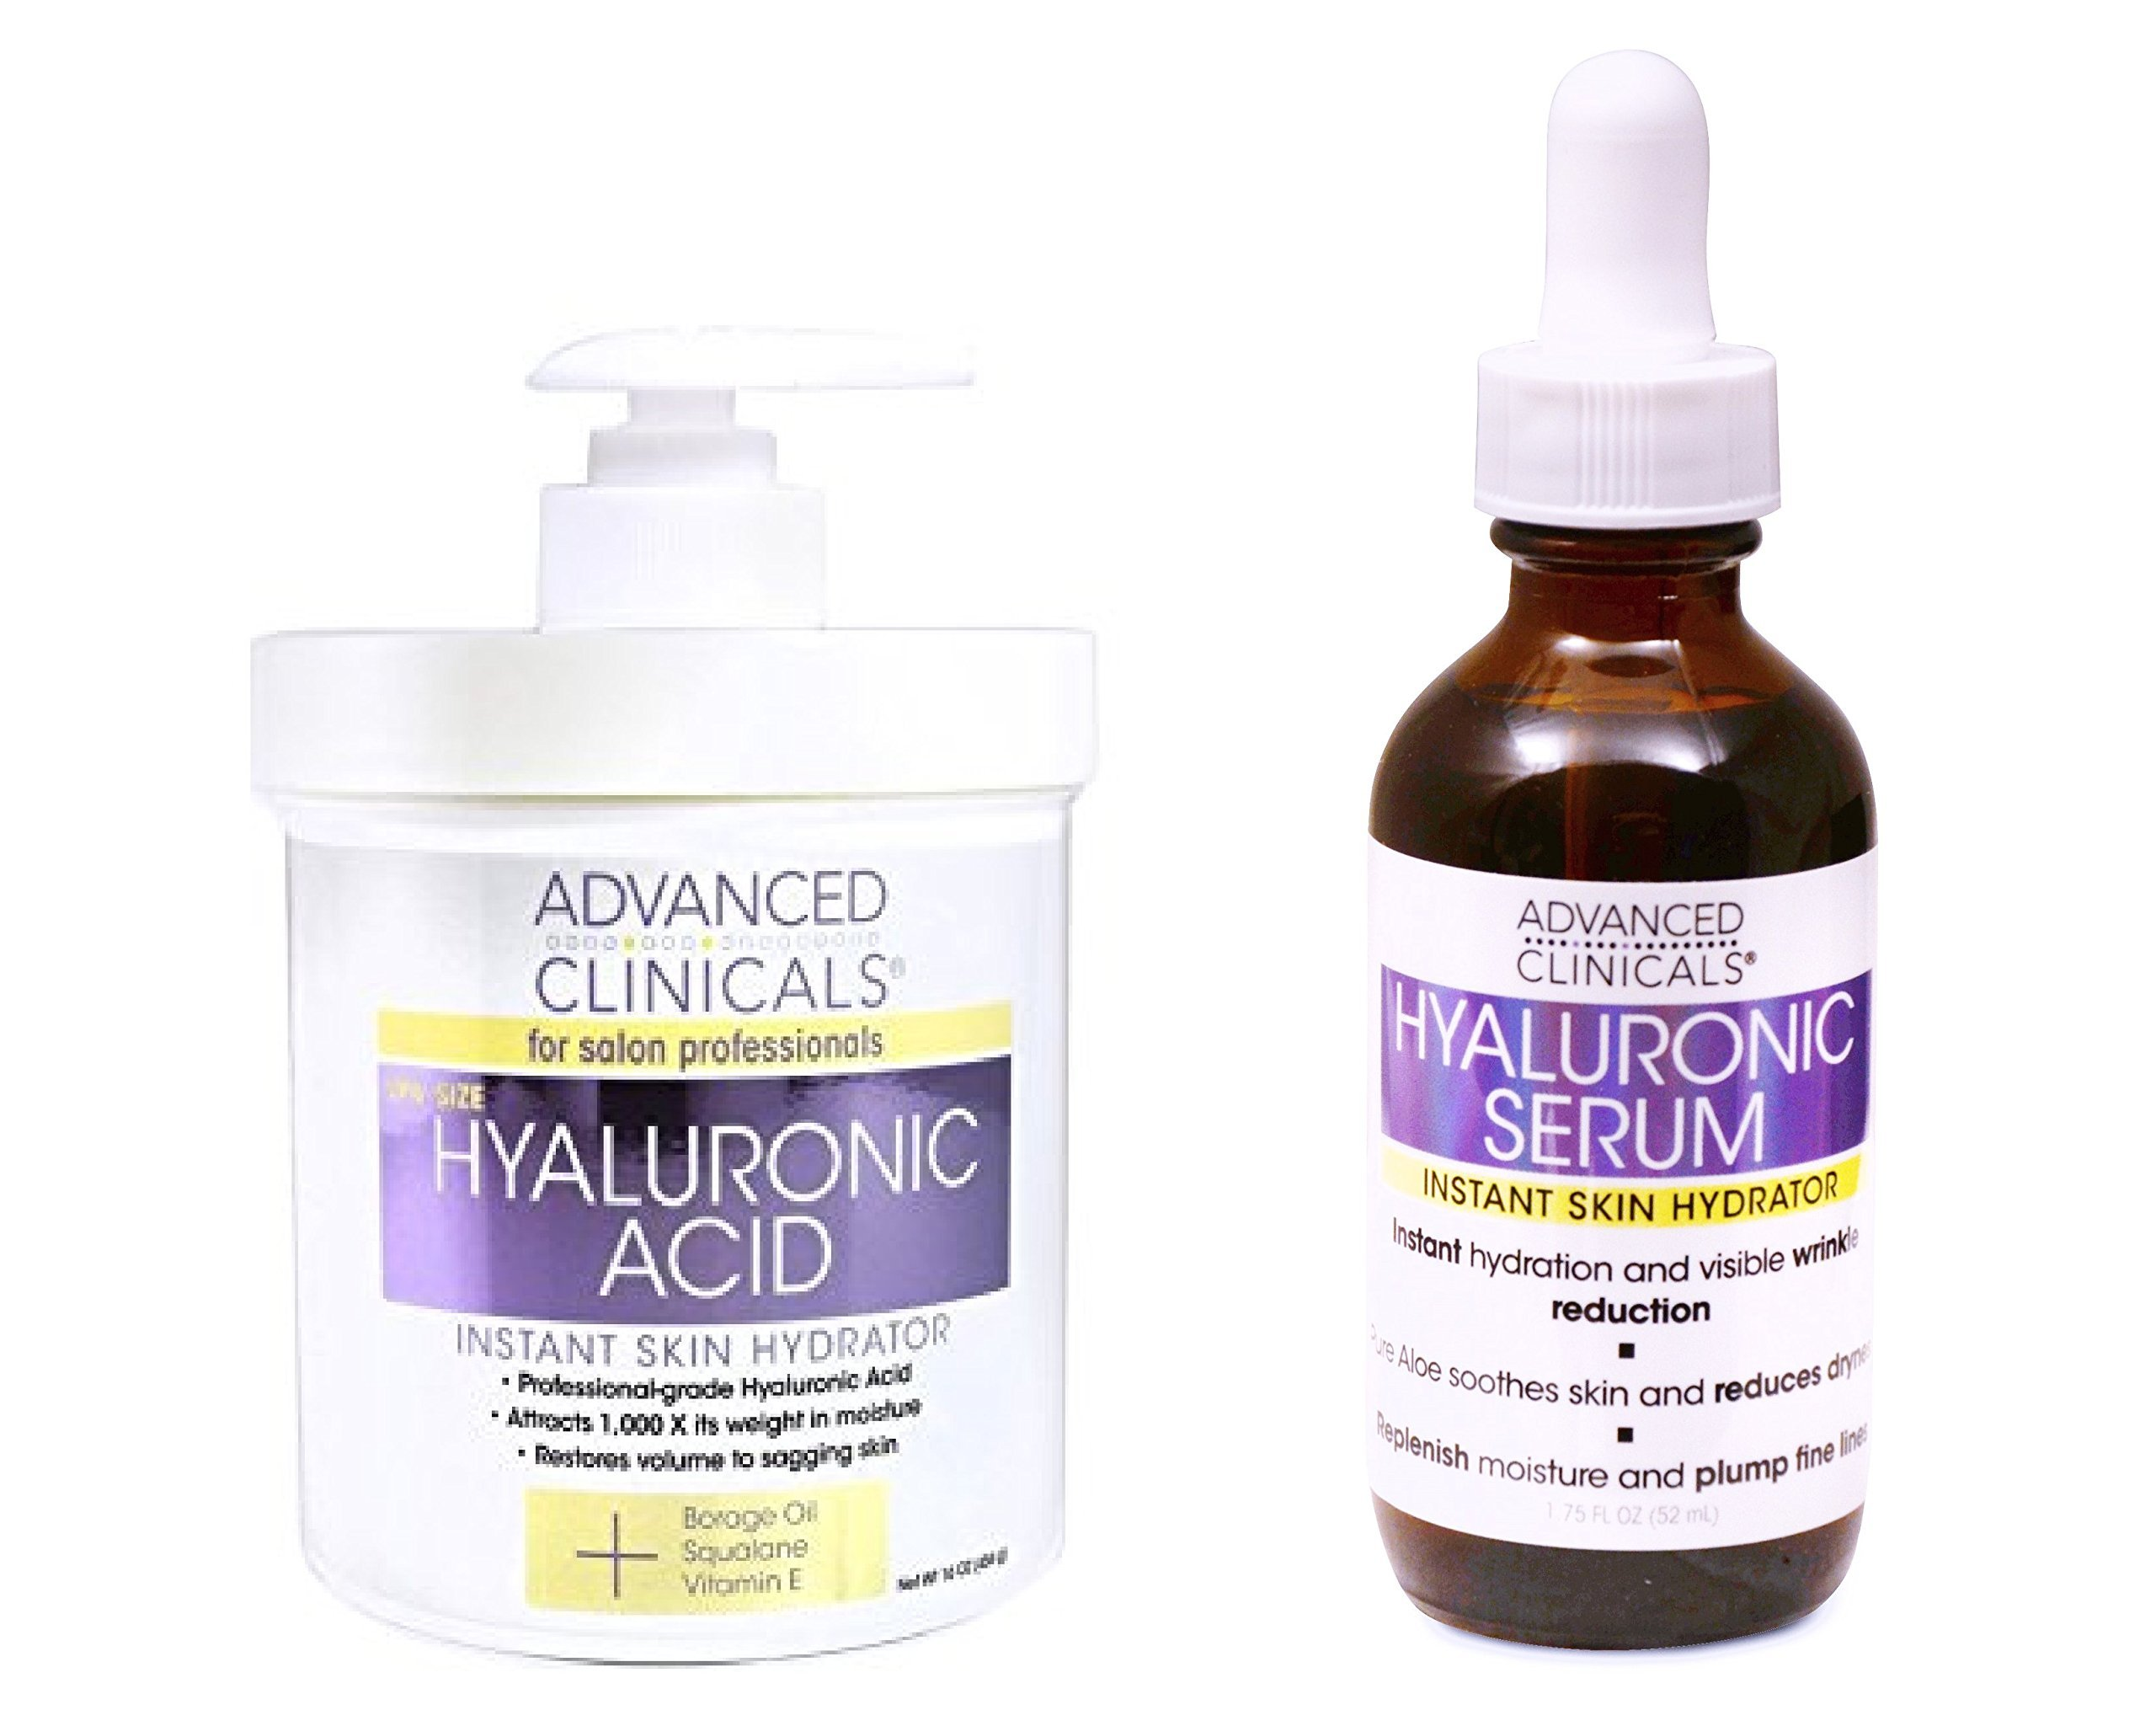 Advanced Clinicals Hyaluronic Acid Cream and Hyaluronic Acid Serum skin care set! Instant hydration for your face and body. Targets wrinkles and fine lines. Spa size 16oz cream & large 1.75oz serum. by Advanced Clinicals